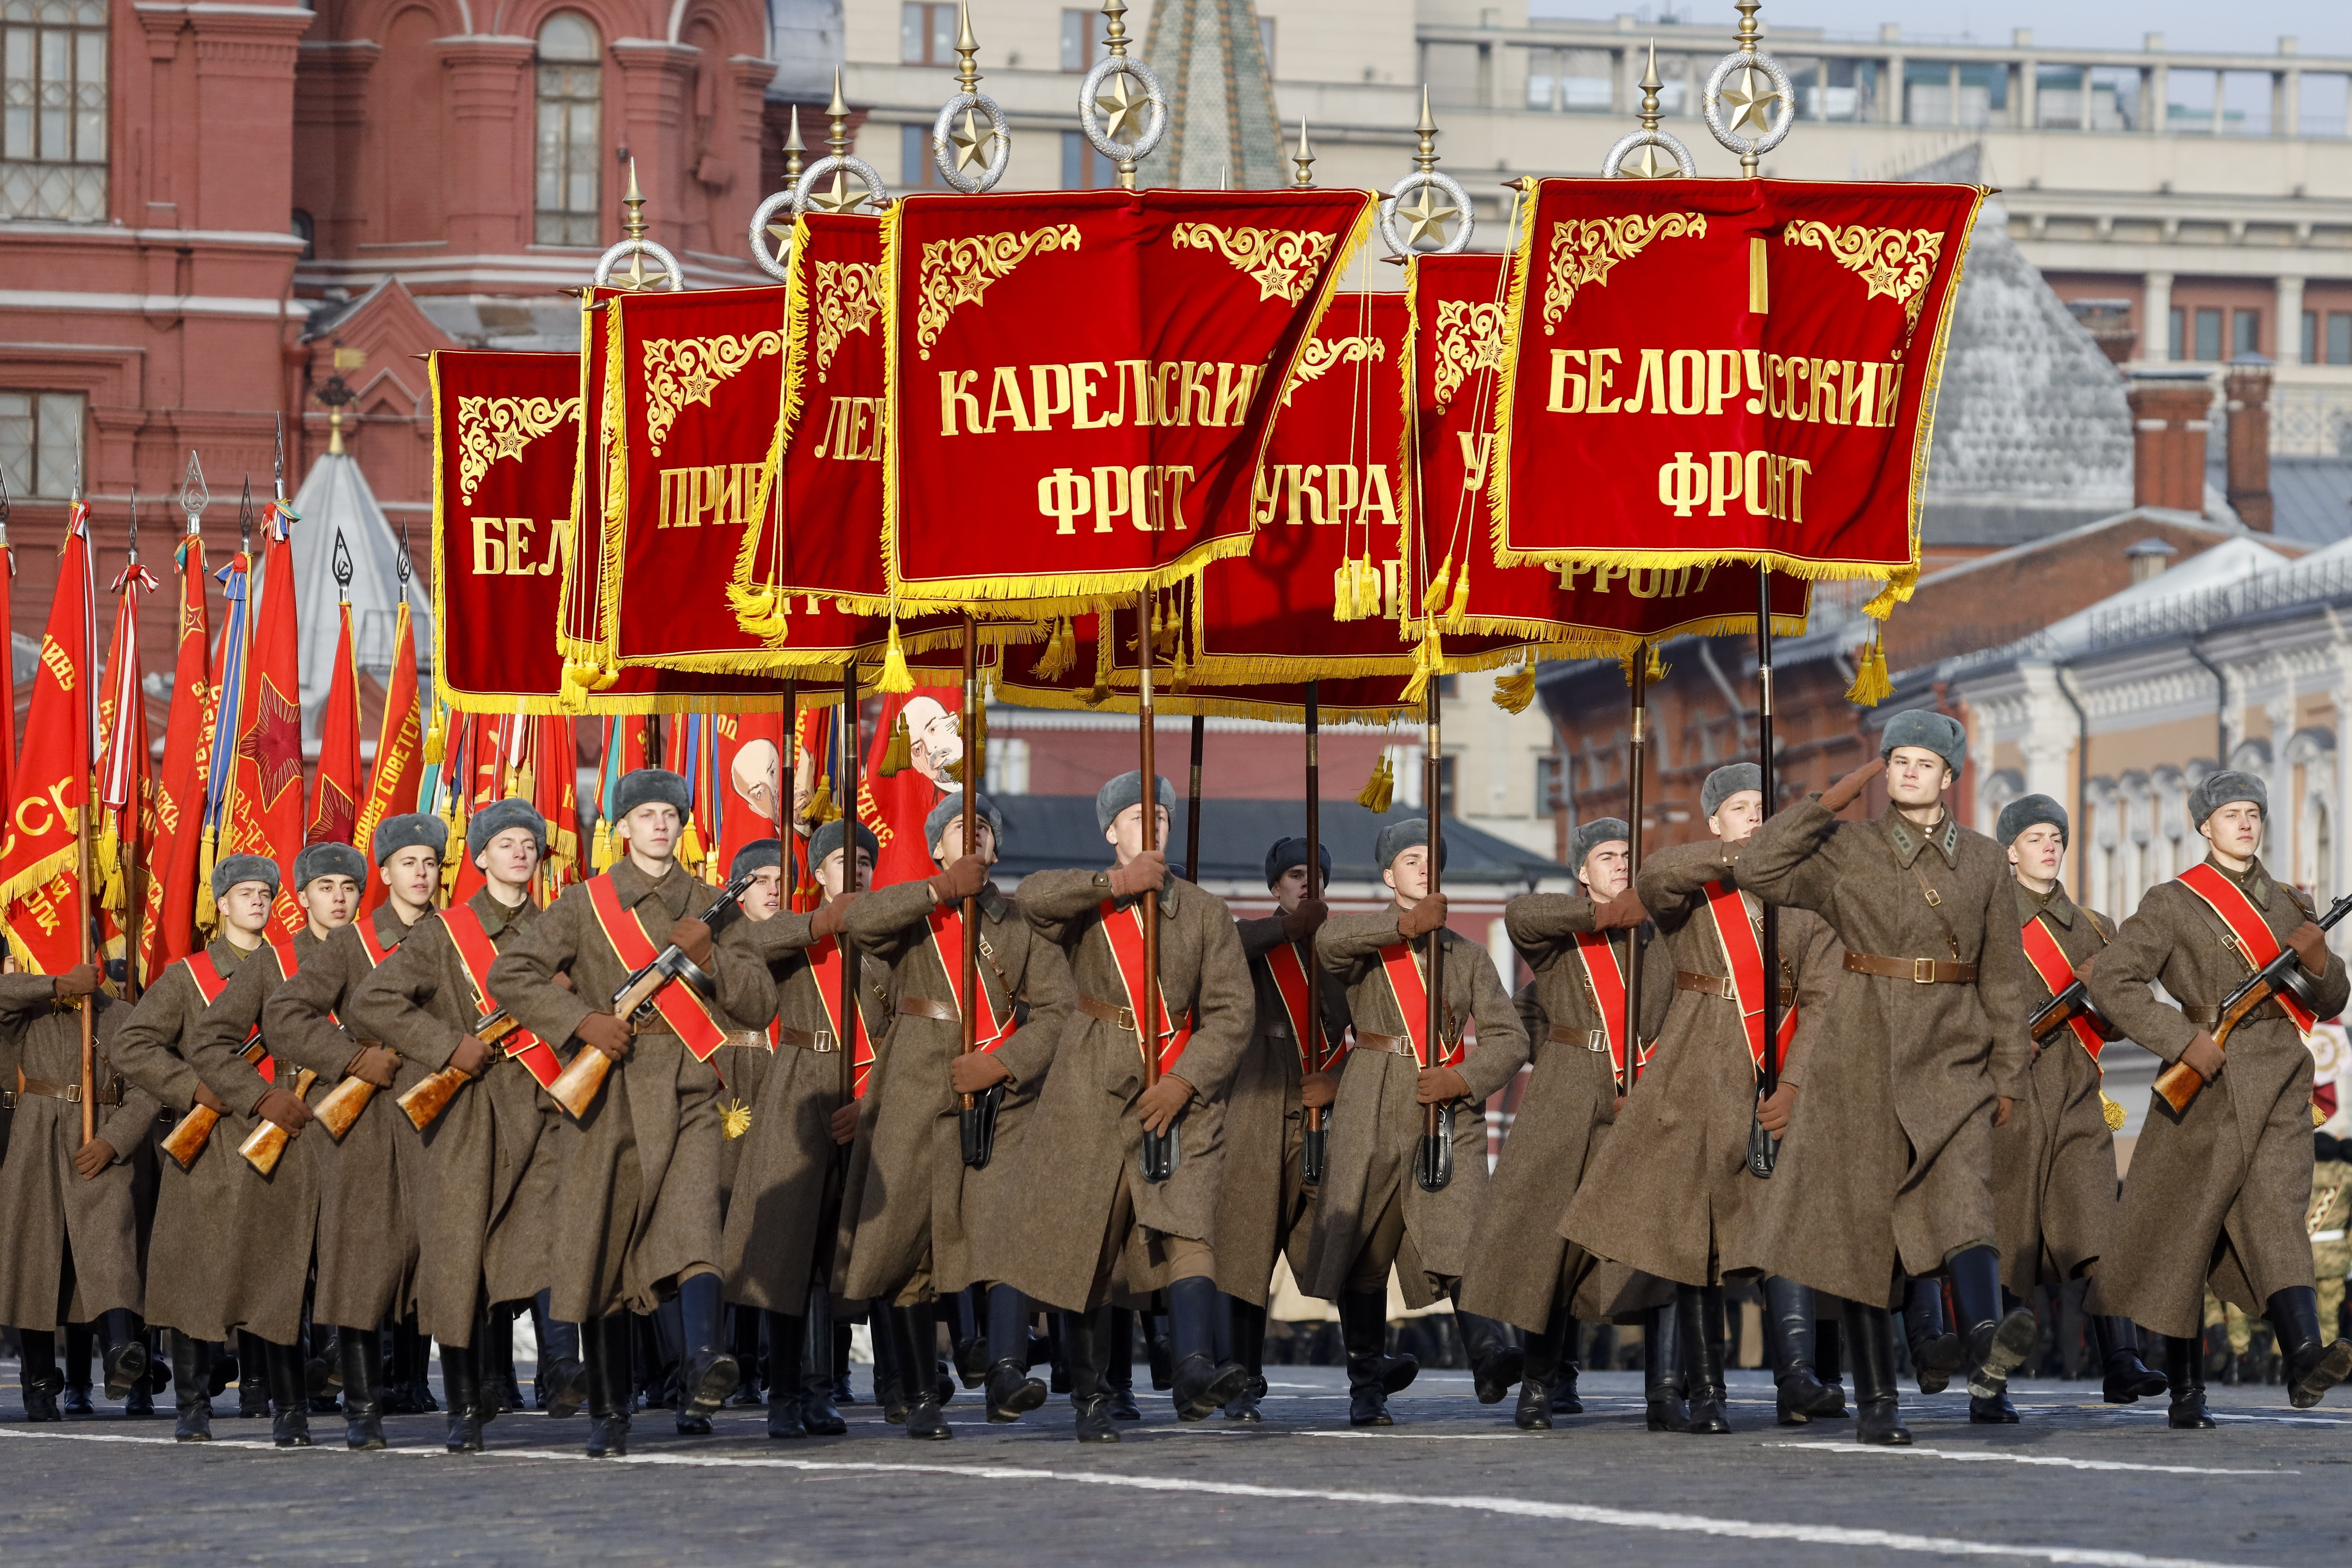 Russian soldiers dressed in Red Army World War II uniforms march during the Nov. 7 parade in Red Square, in Moscow, Russia, Wednesday, Nov. 7, 2018. The event marked the 77th anniversary of a World War II historic parade in Red Square and honored the participants in the Nov. 7, 1941 parade who headed directly to the front lines to defend Moscow from the Nazi forces. (AP Photo/Alexander Zemlianichenko)